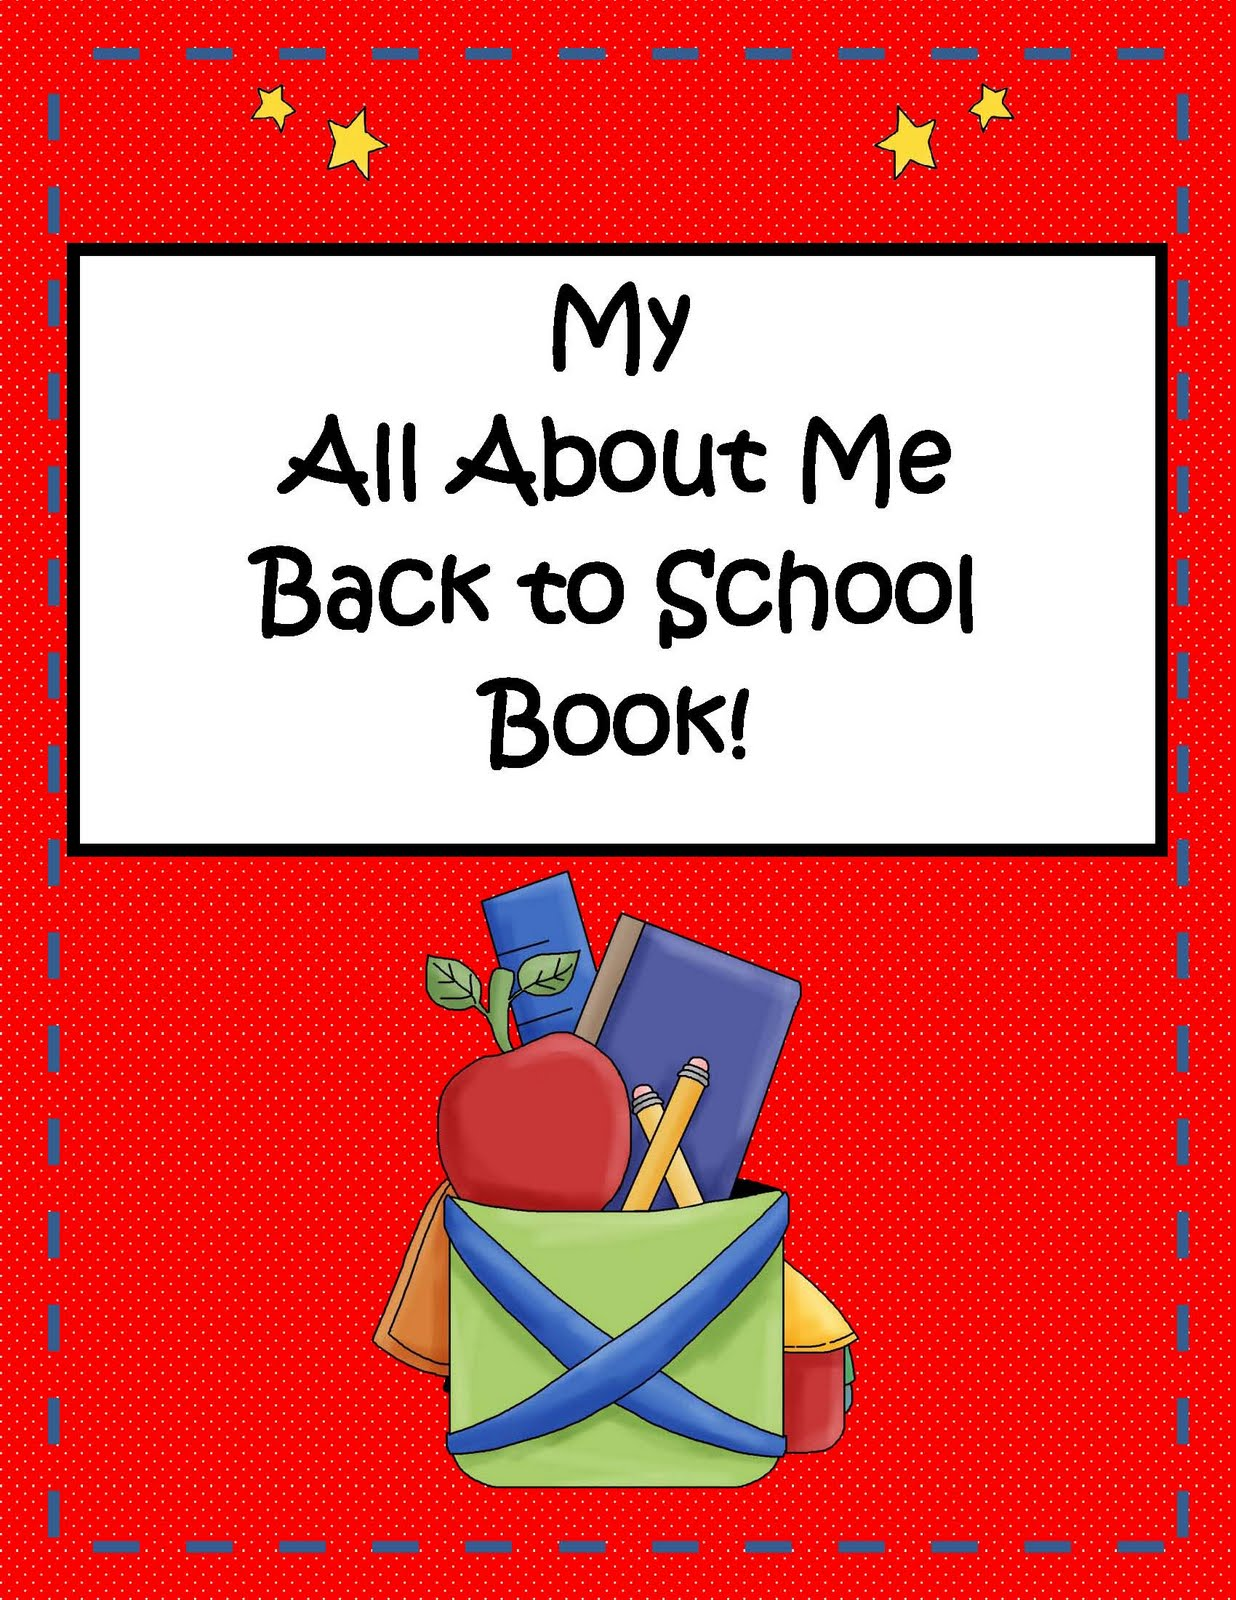 ... com/downloads/back-to-school-all-about-me-mini-book.html?affId=104115